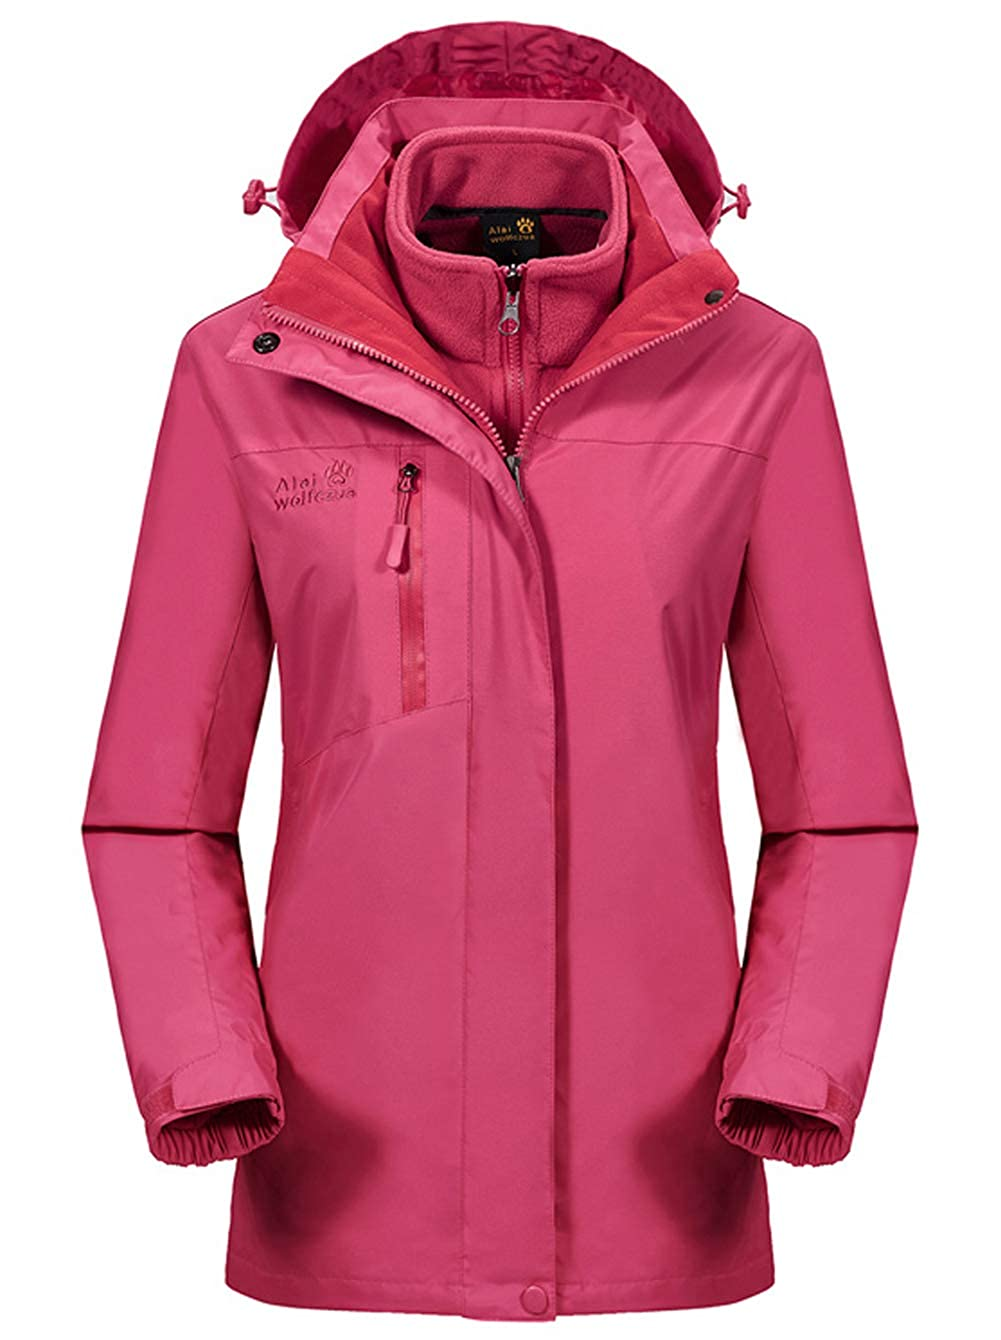 J-SUN-7 Couple Mountain Jacket Fleece Windproof Ski Jacket 86009-1